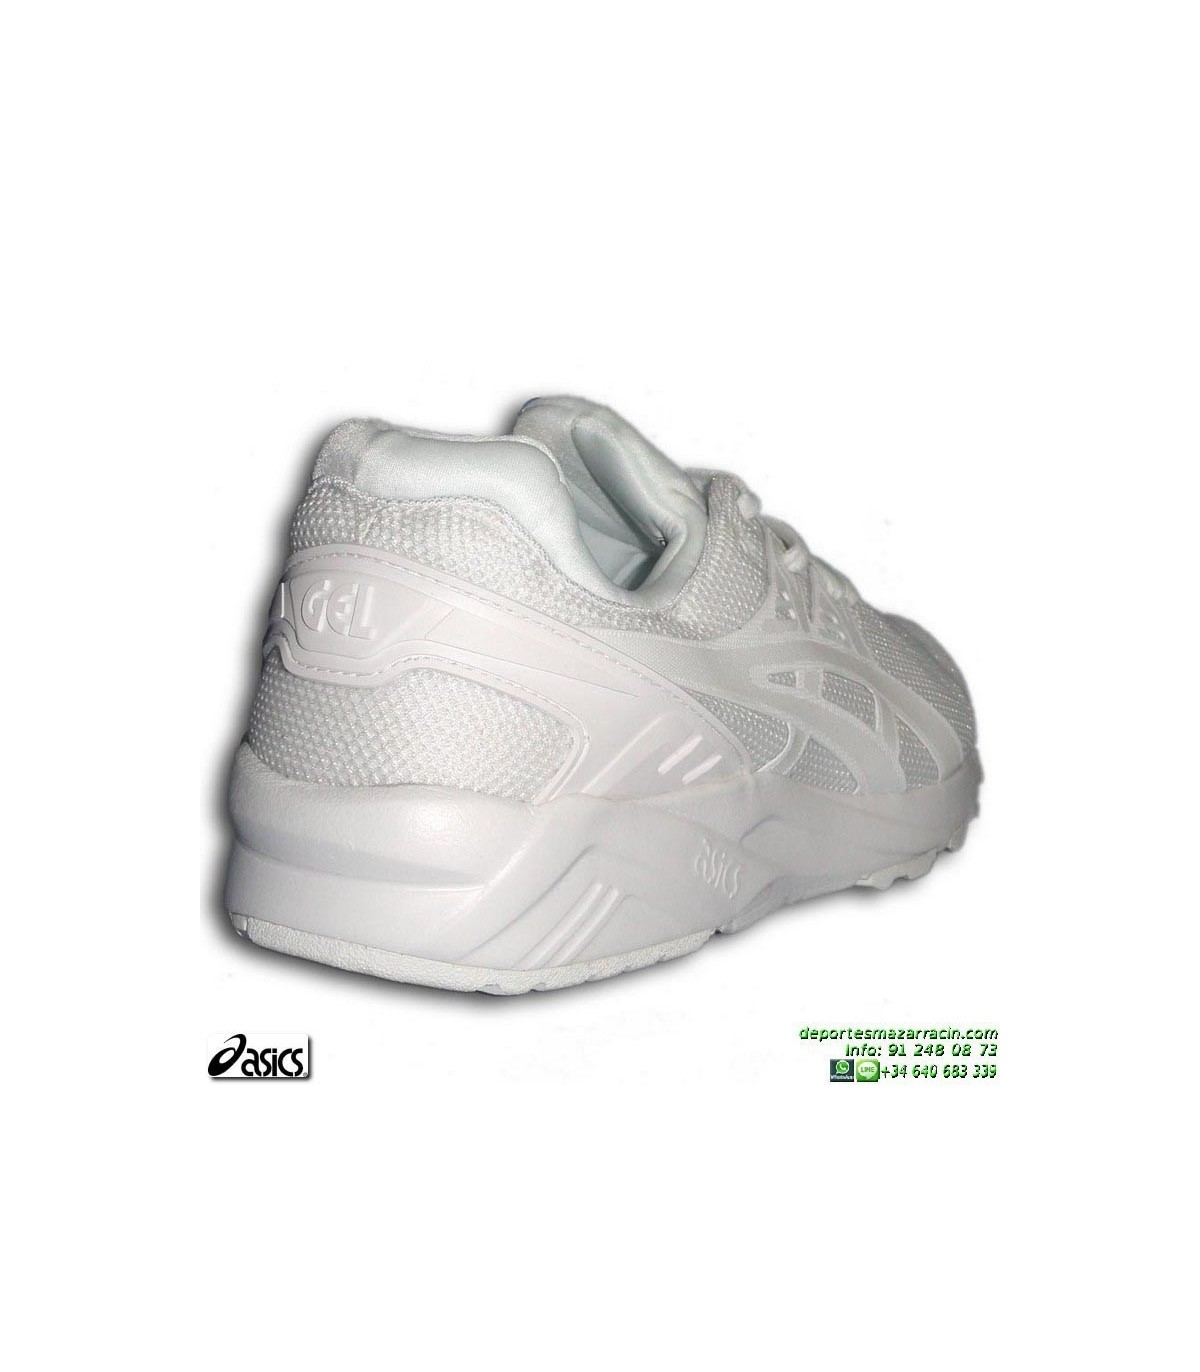 ef4faf89c9c Sneakers ASICS GEL KAYANO TRAINER EVO Blanca Hombre HN6A0-0101 zapatilla  deportiva. Sneakers ASICS GEL KAYANO TRAINER EVO ...